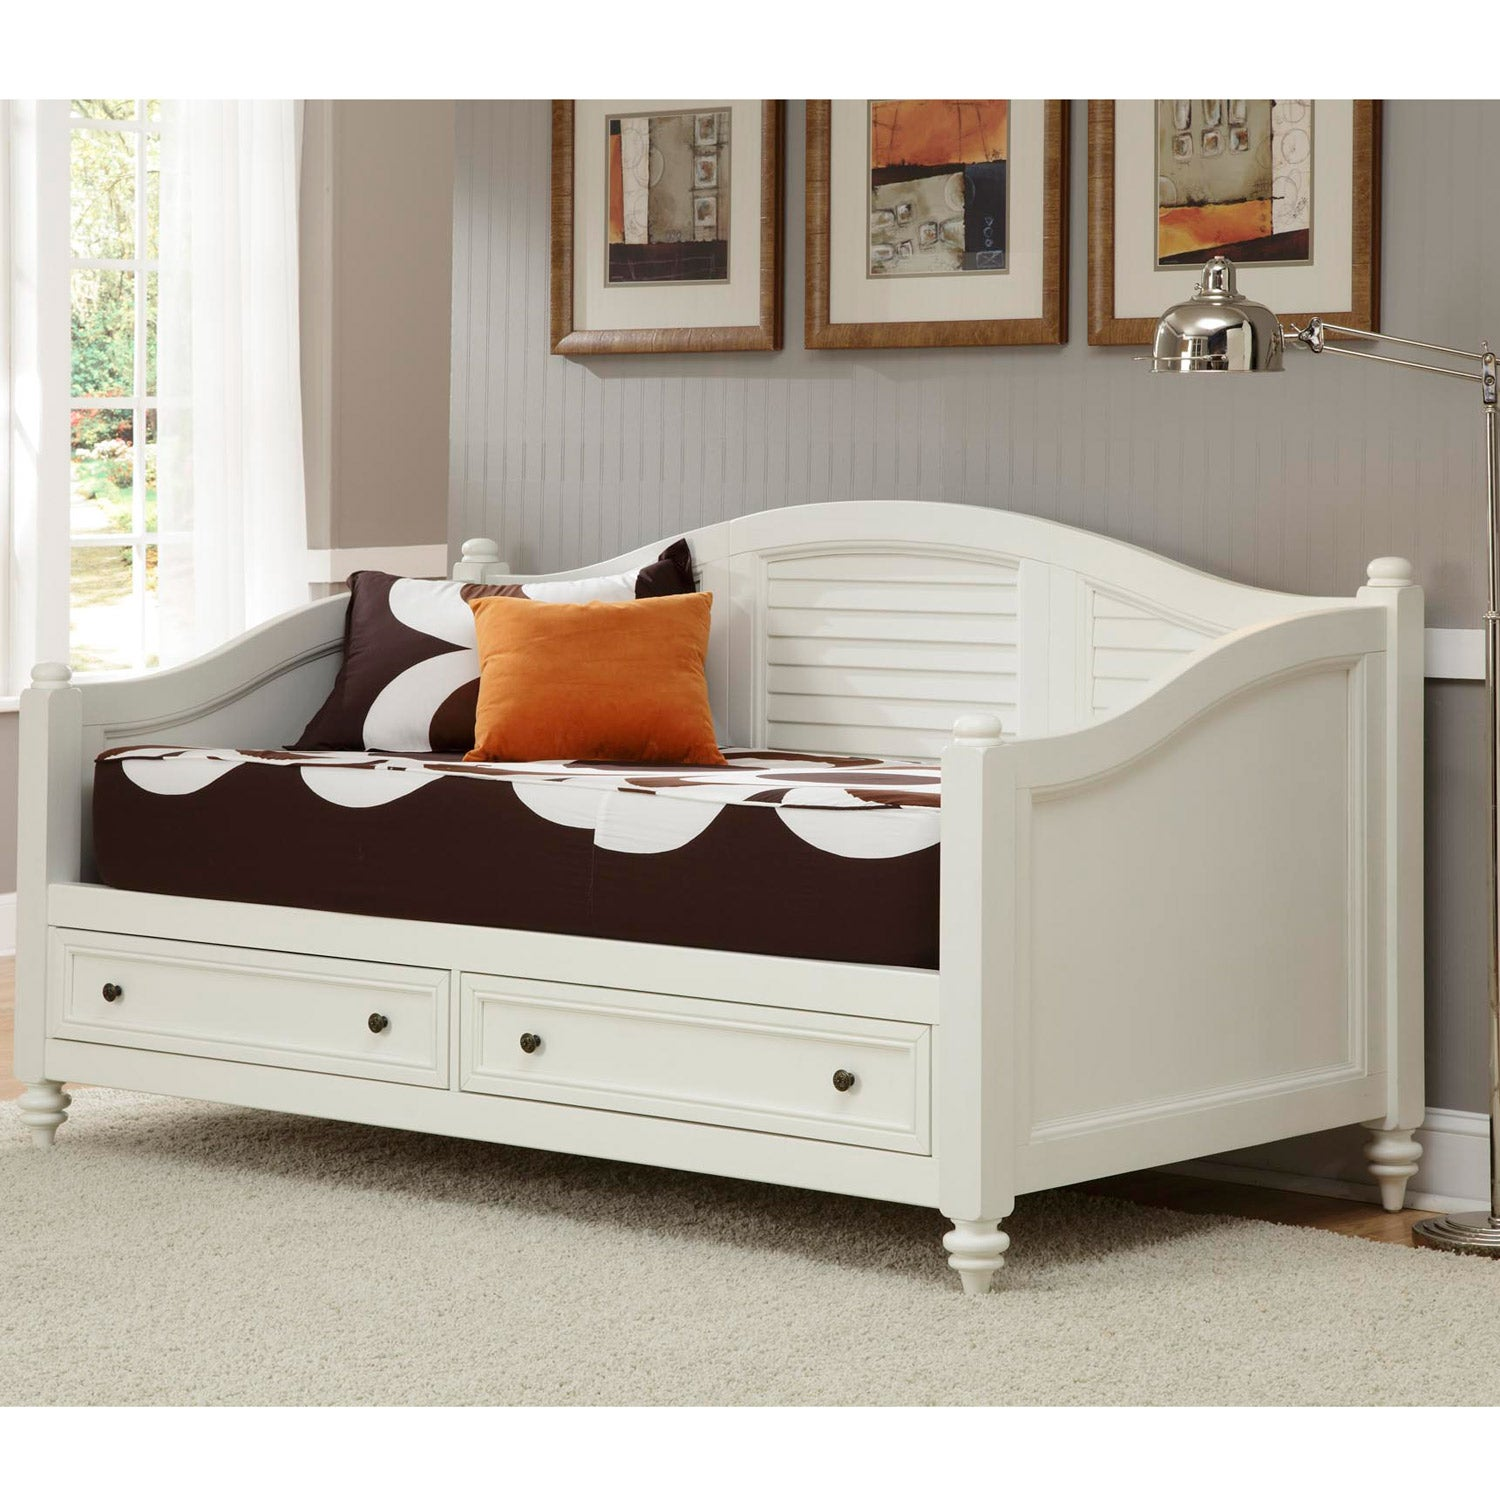 Bermuda Brushed White Finish Twin-size DayBed at Sears.com